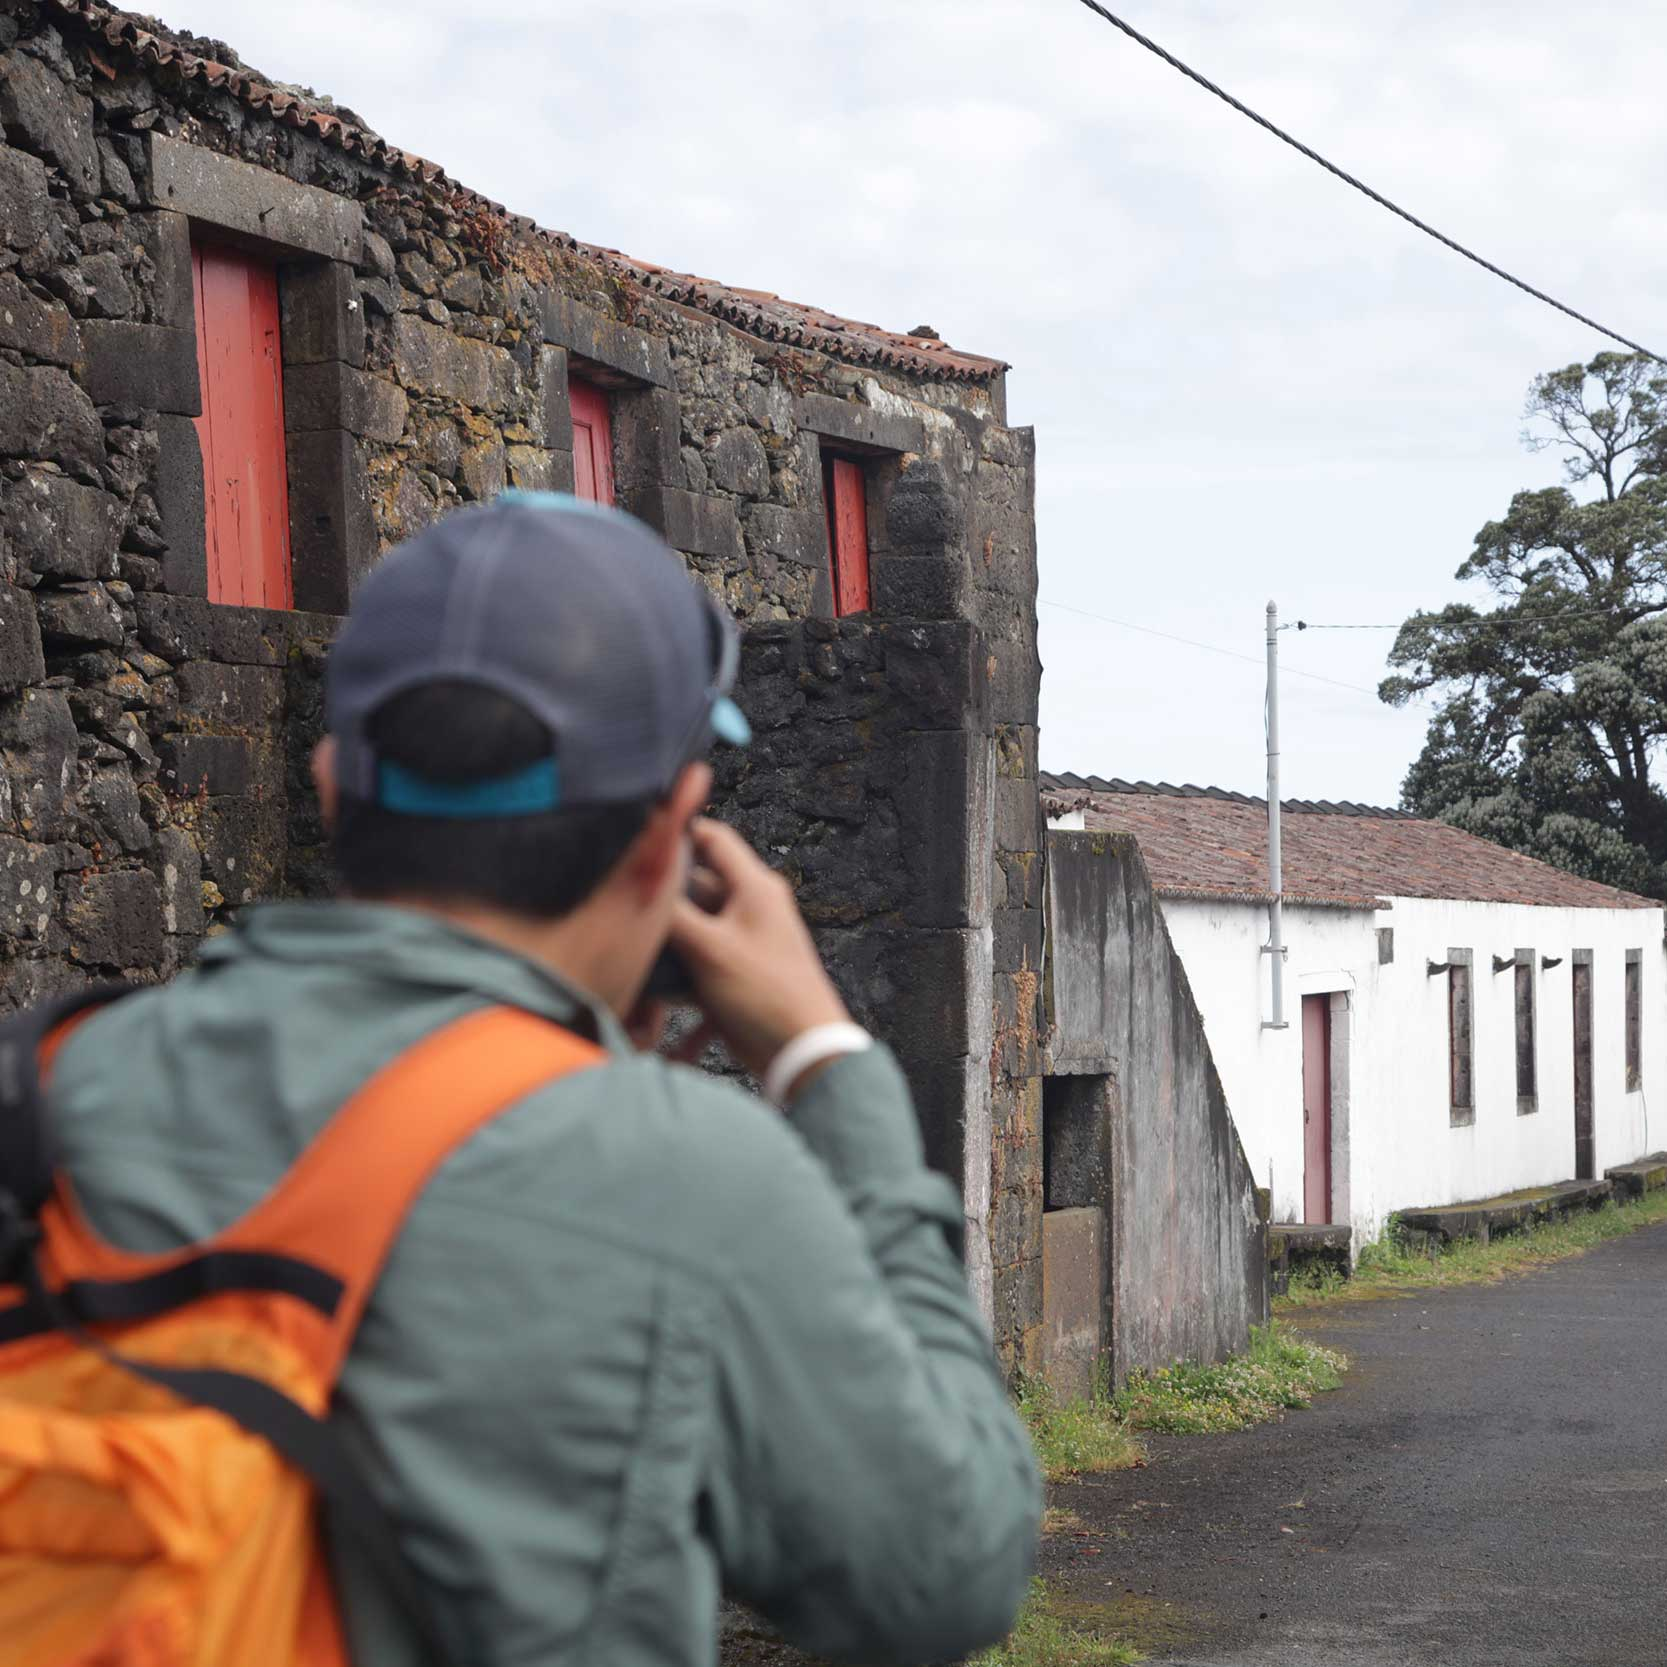 Customer photographing an old traditional architecture house. Faial half day includes the main attractions